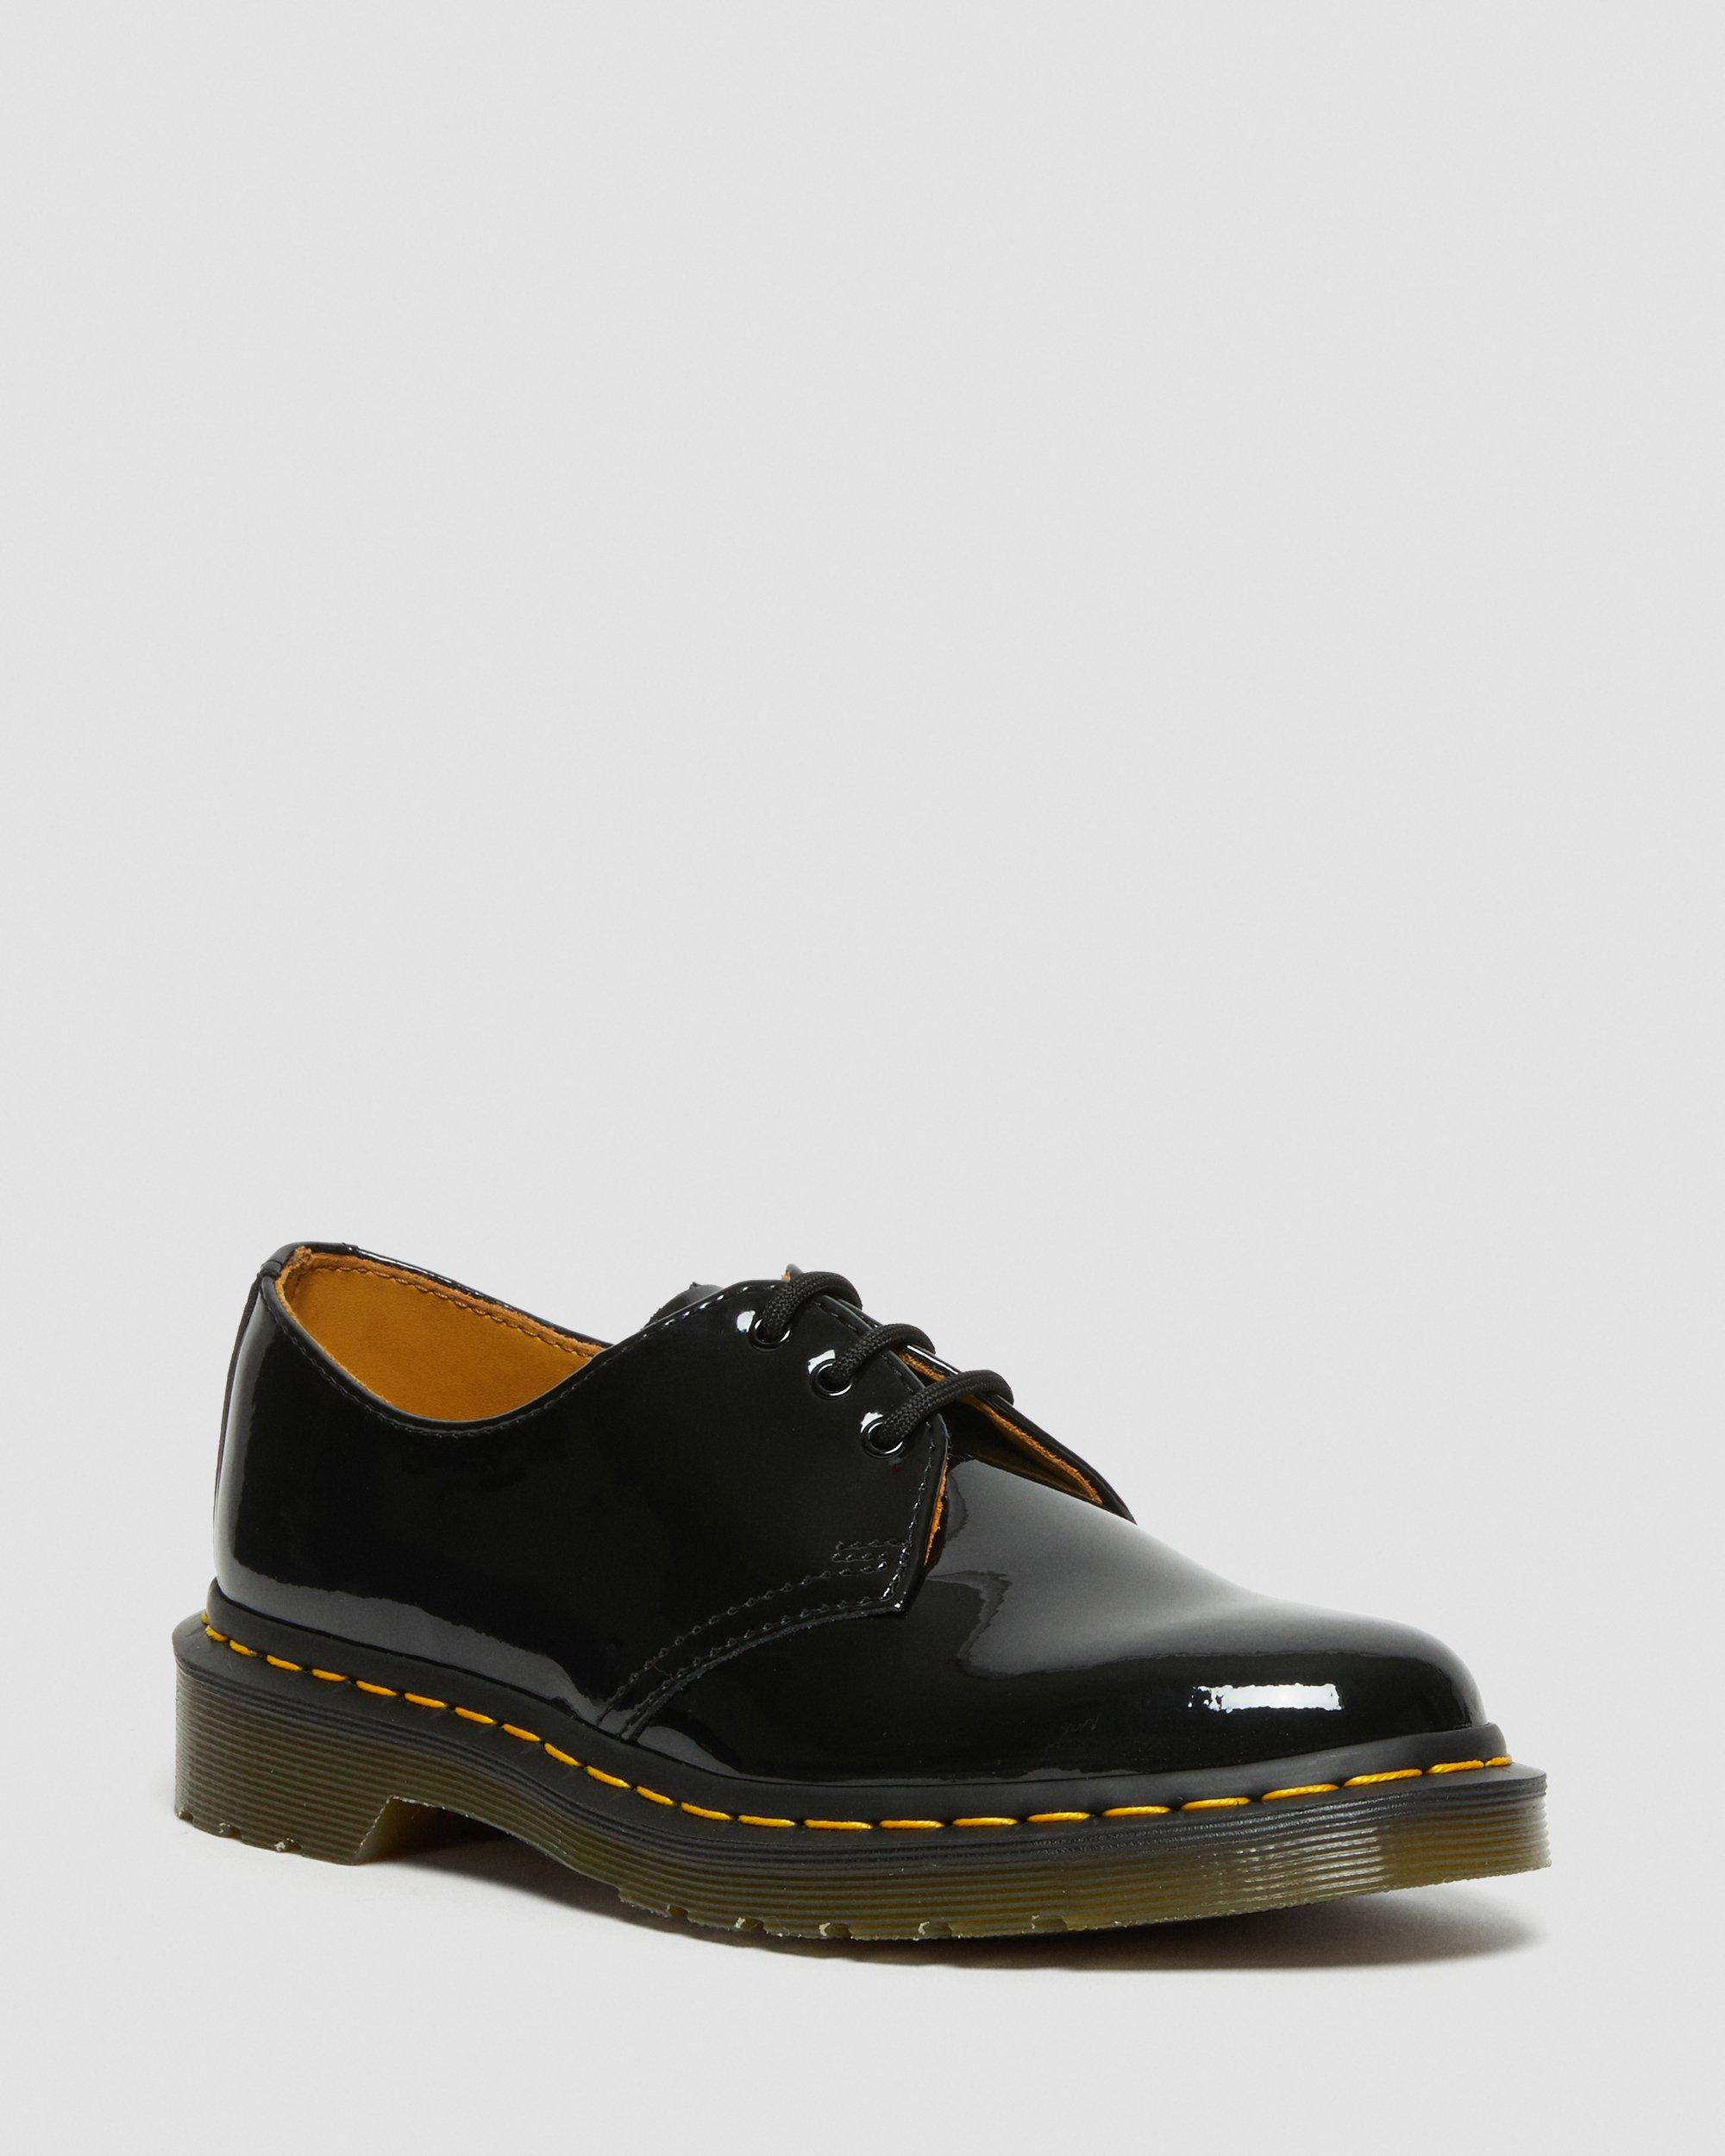 Dr martens 1461 patent leather shoes | Chaussure, Robe